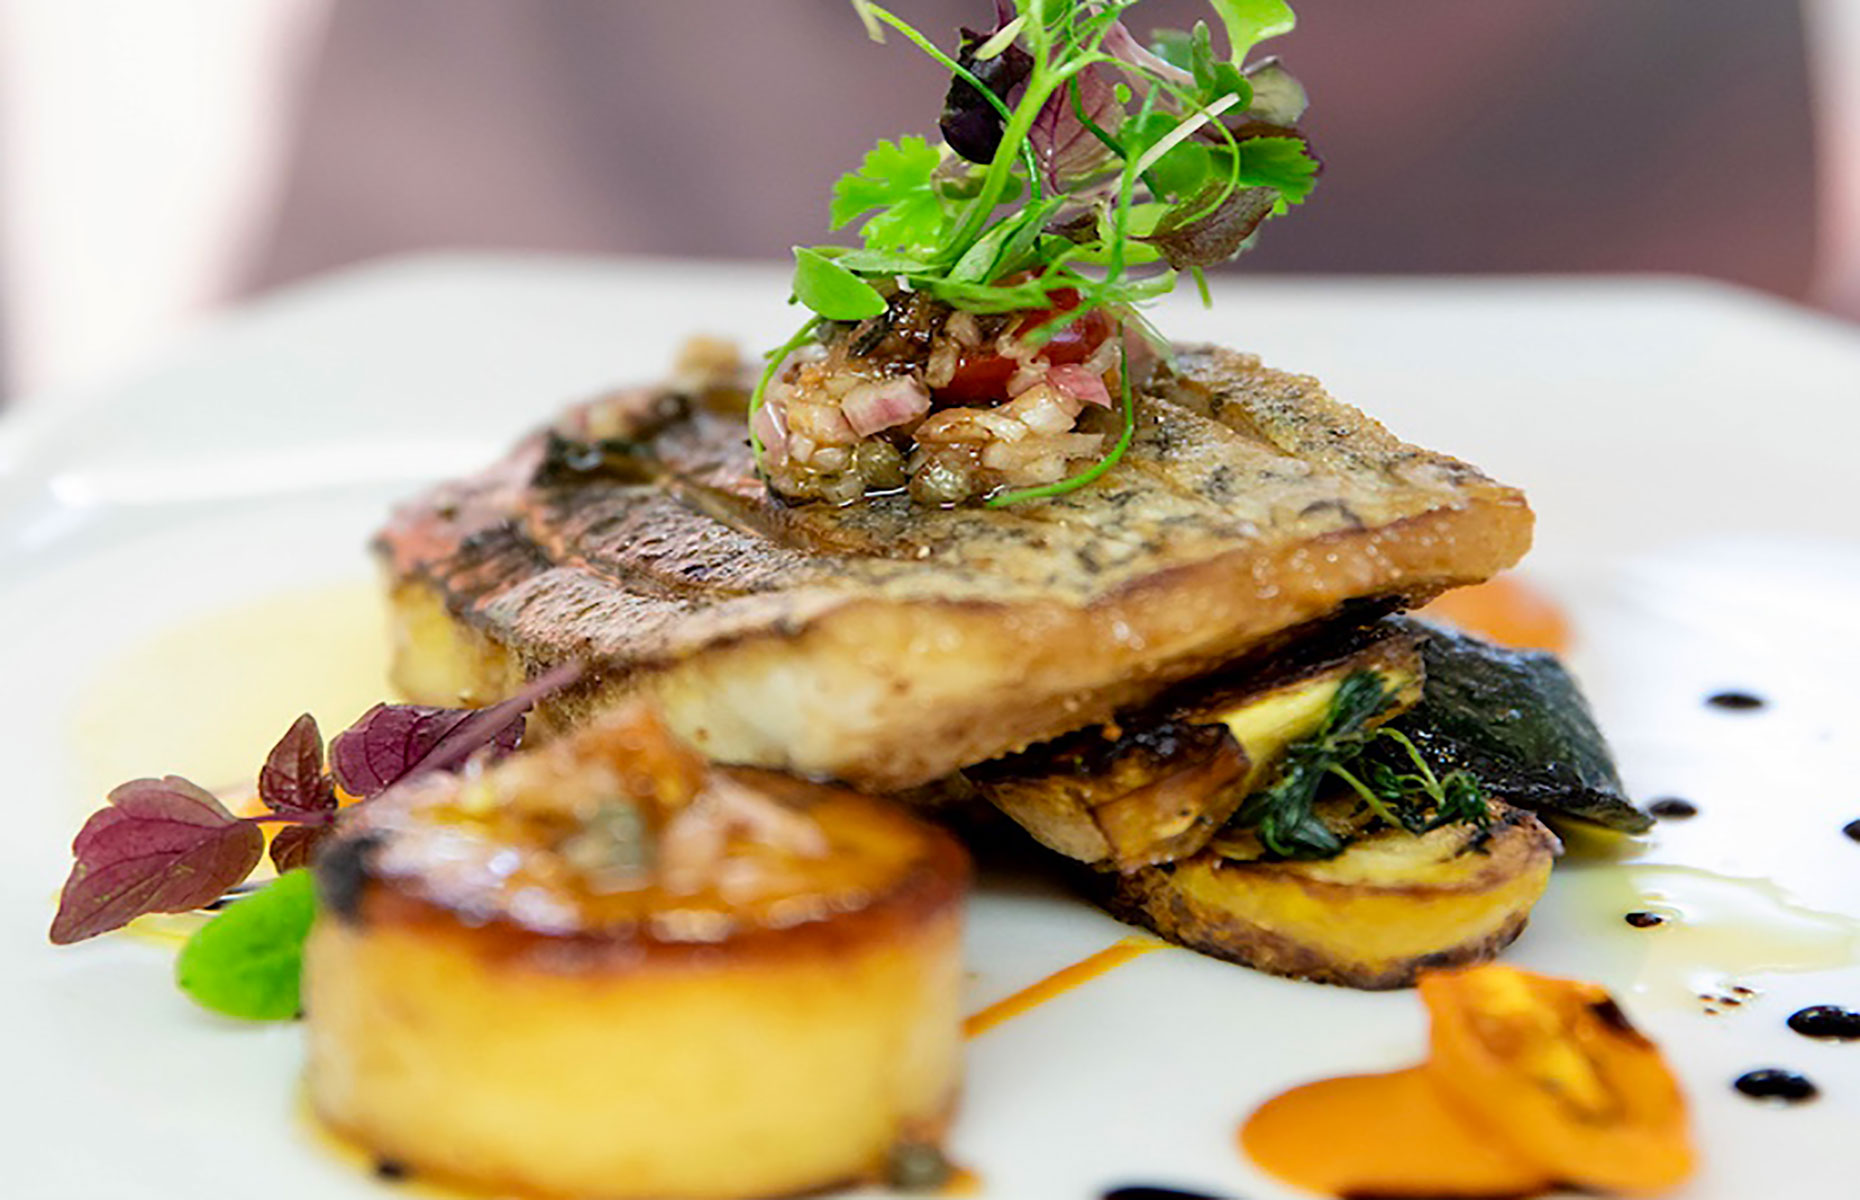 Fish dish at Burleigh Court (Image: Courtesy of Burleigh Court Photography)